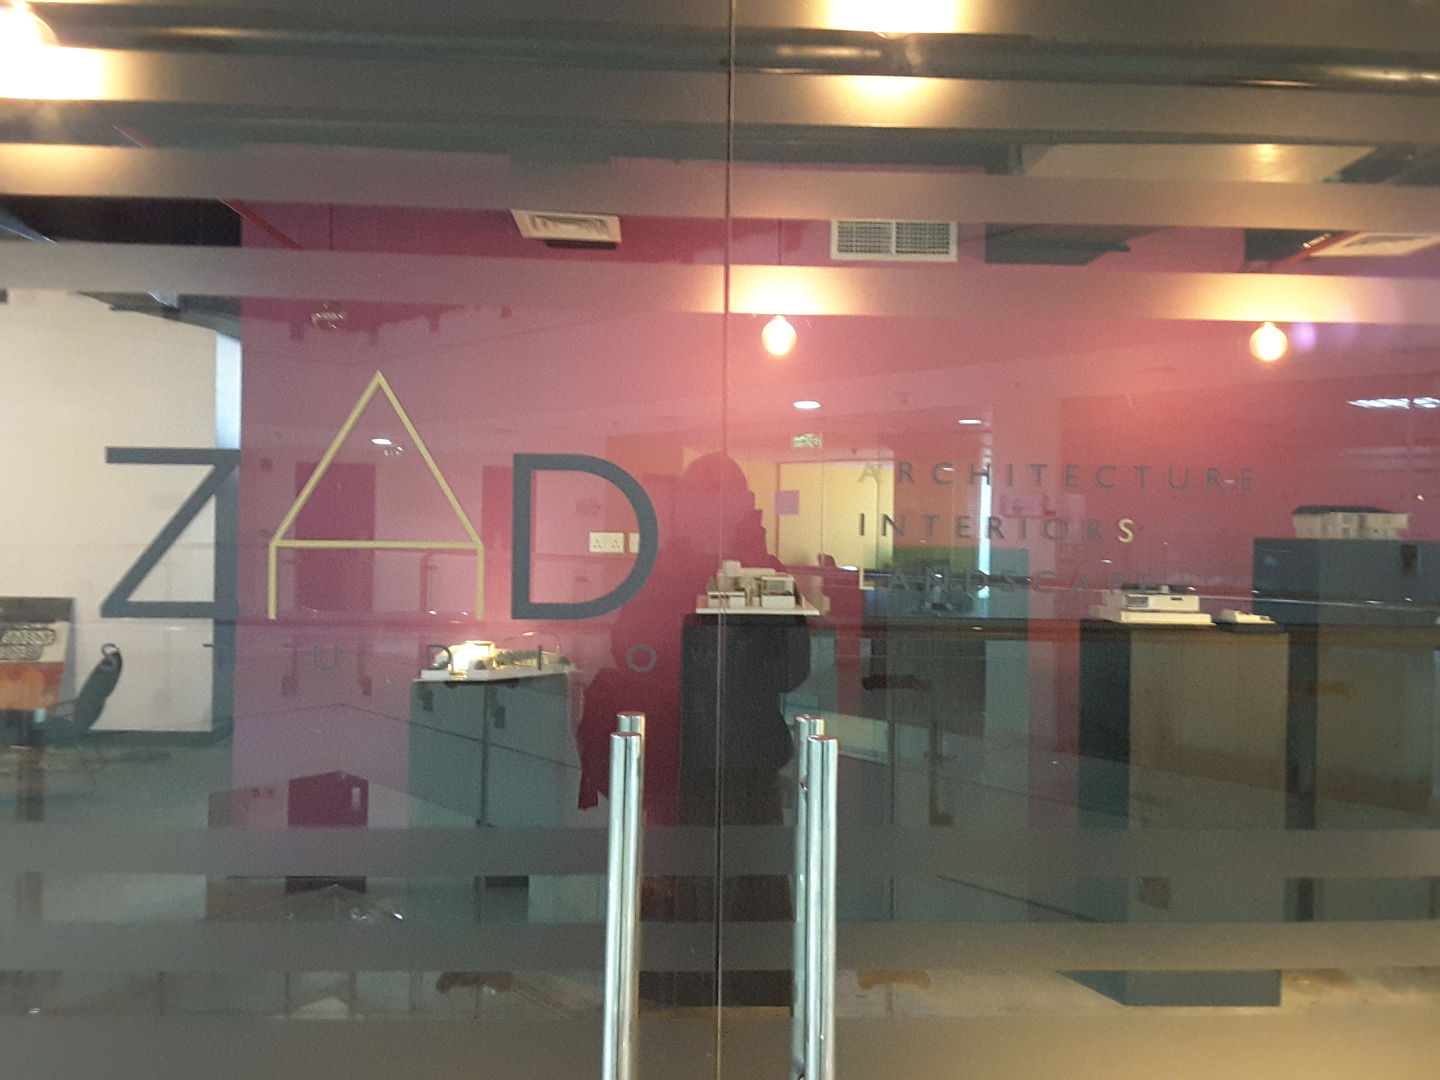 HiDubai-business-zad-studio-architectural-consultancy-construction-heavy-industries-architects-design-services-business-bay-dubai-2